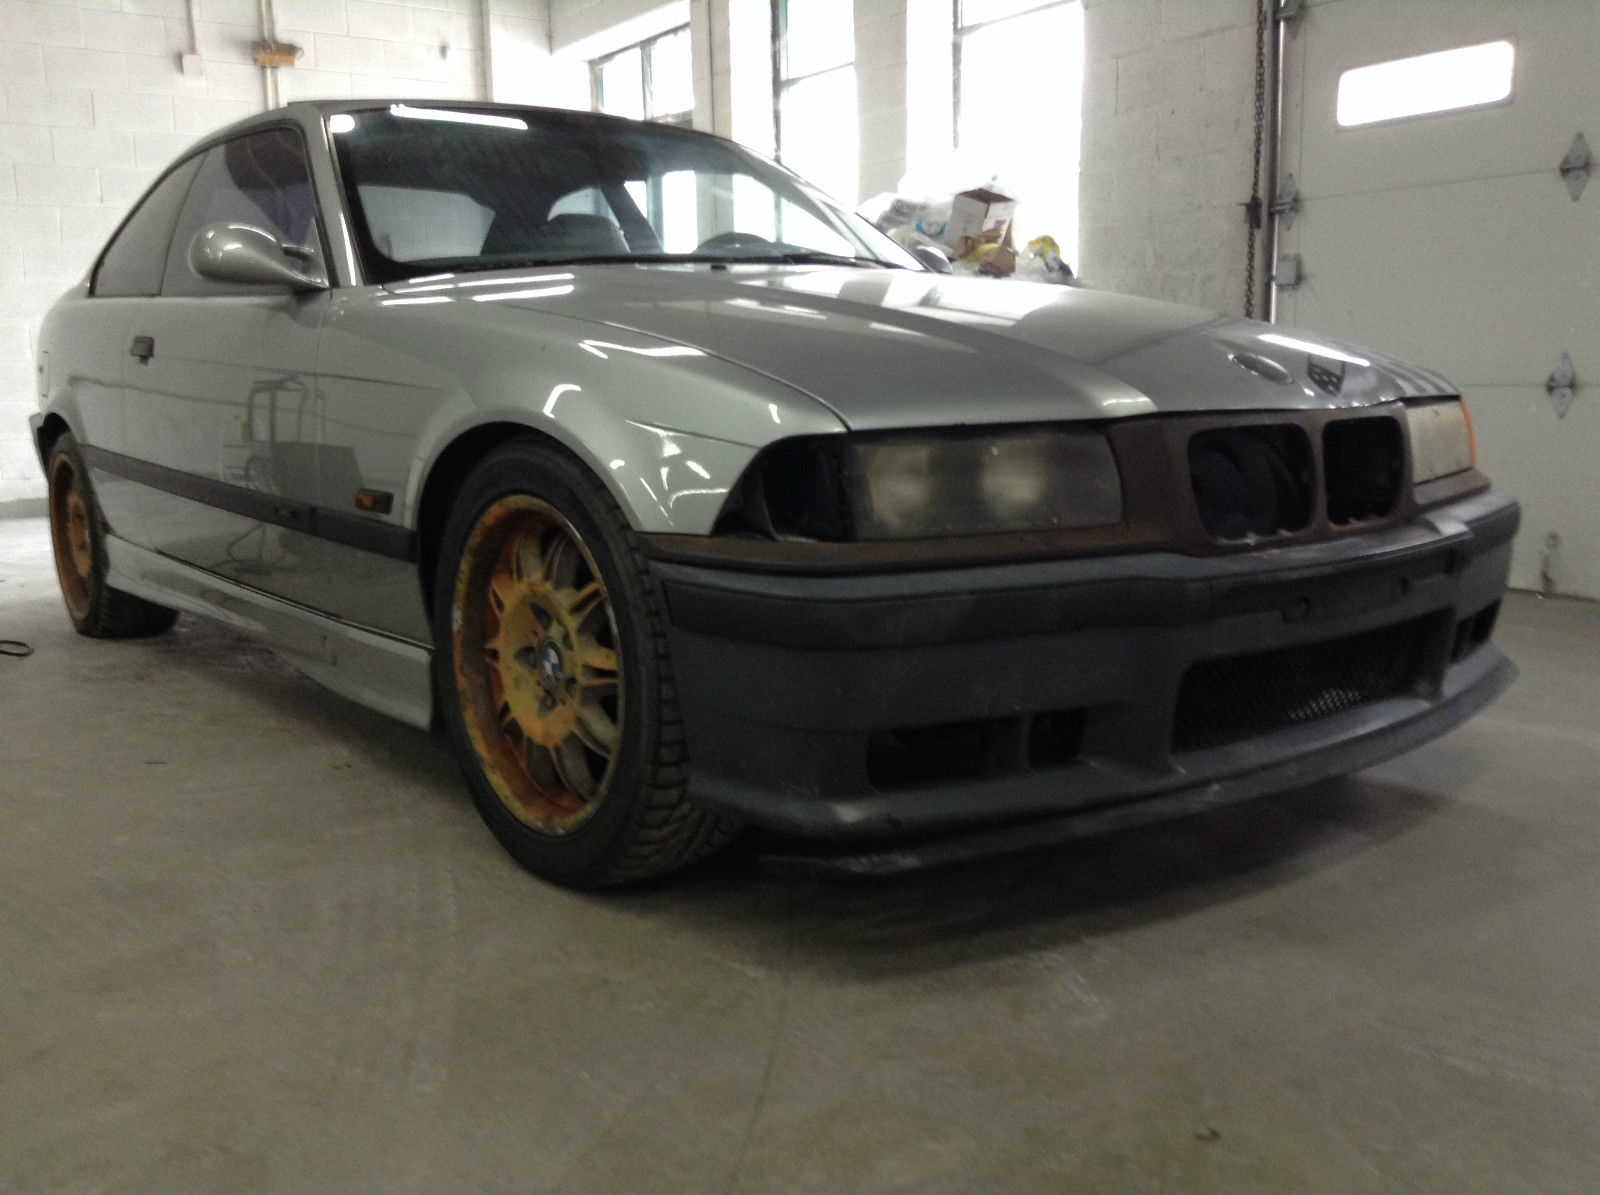 1996 Bmw M3 E36 Coupe Project Car For Sale